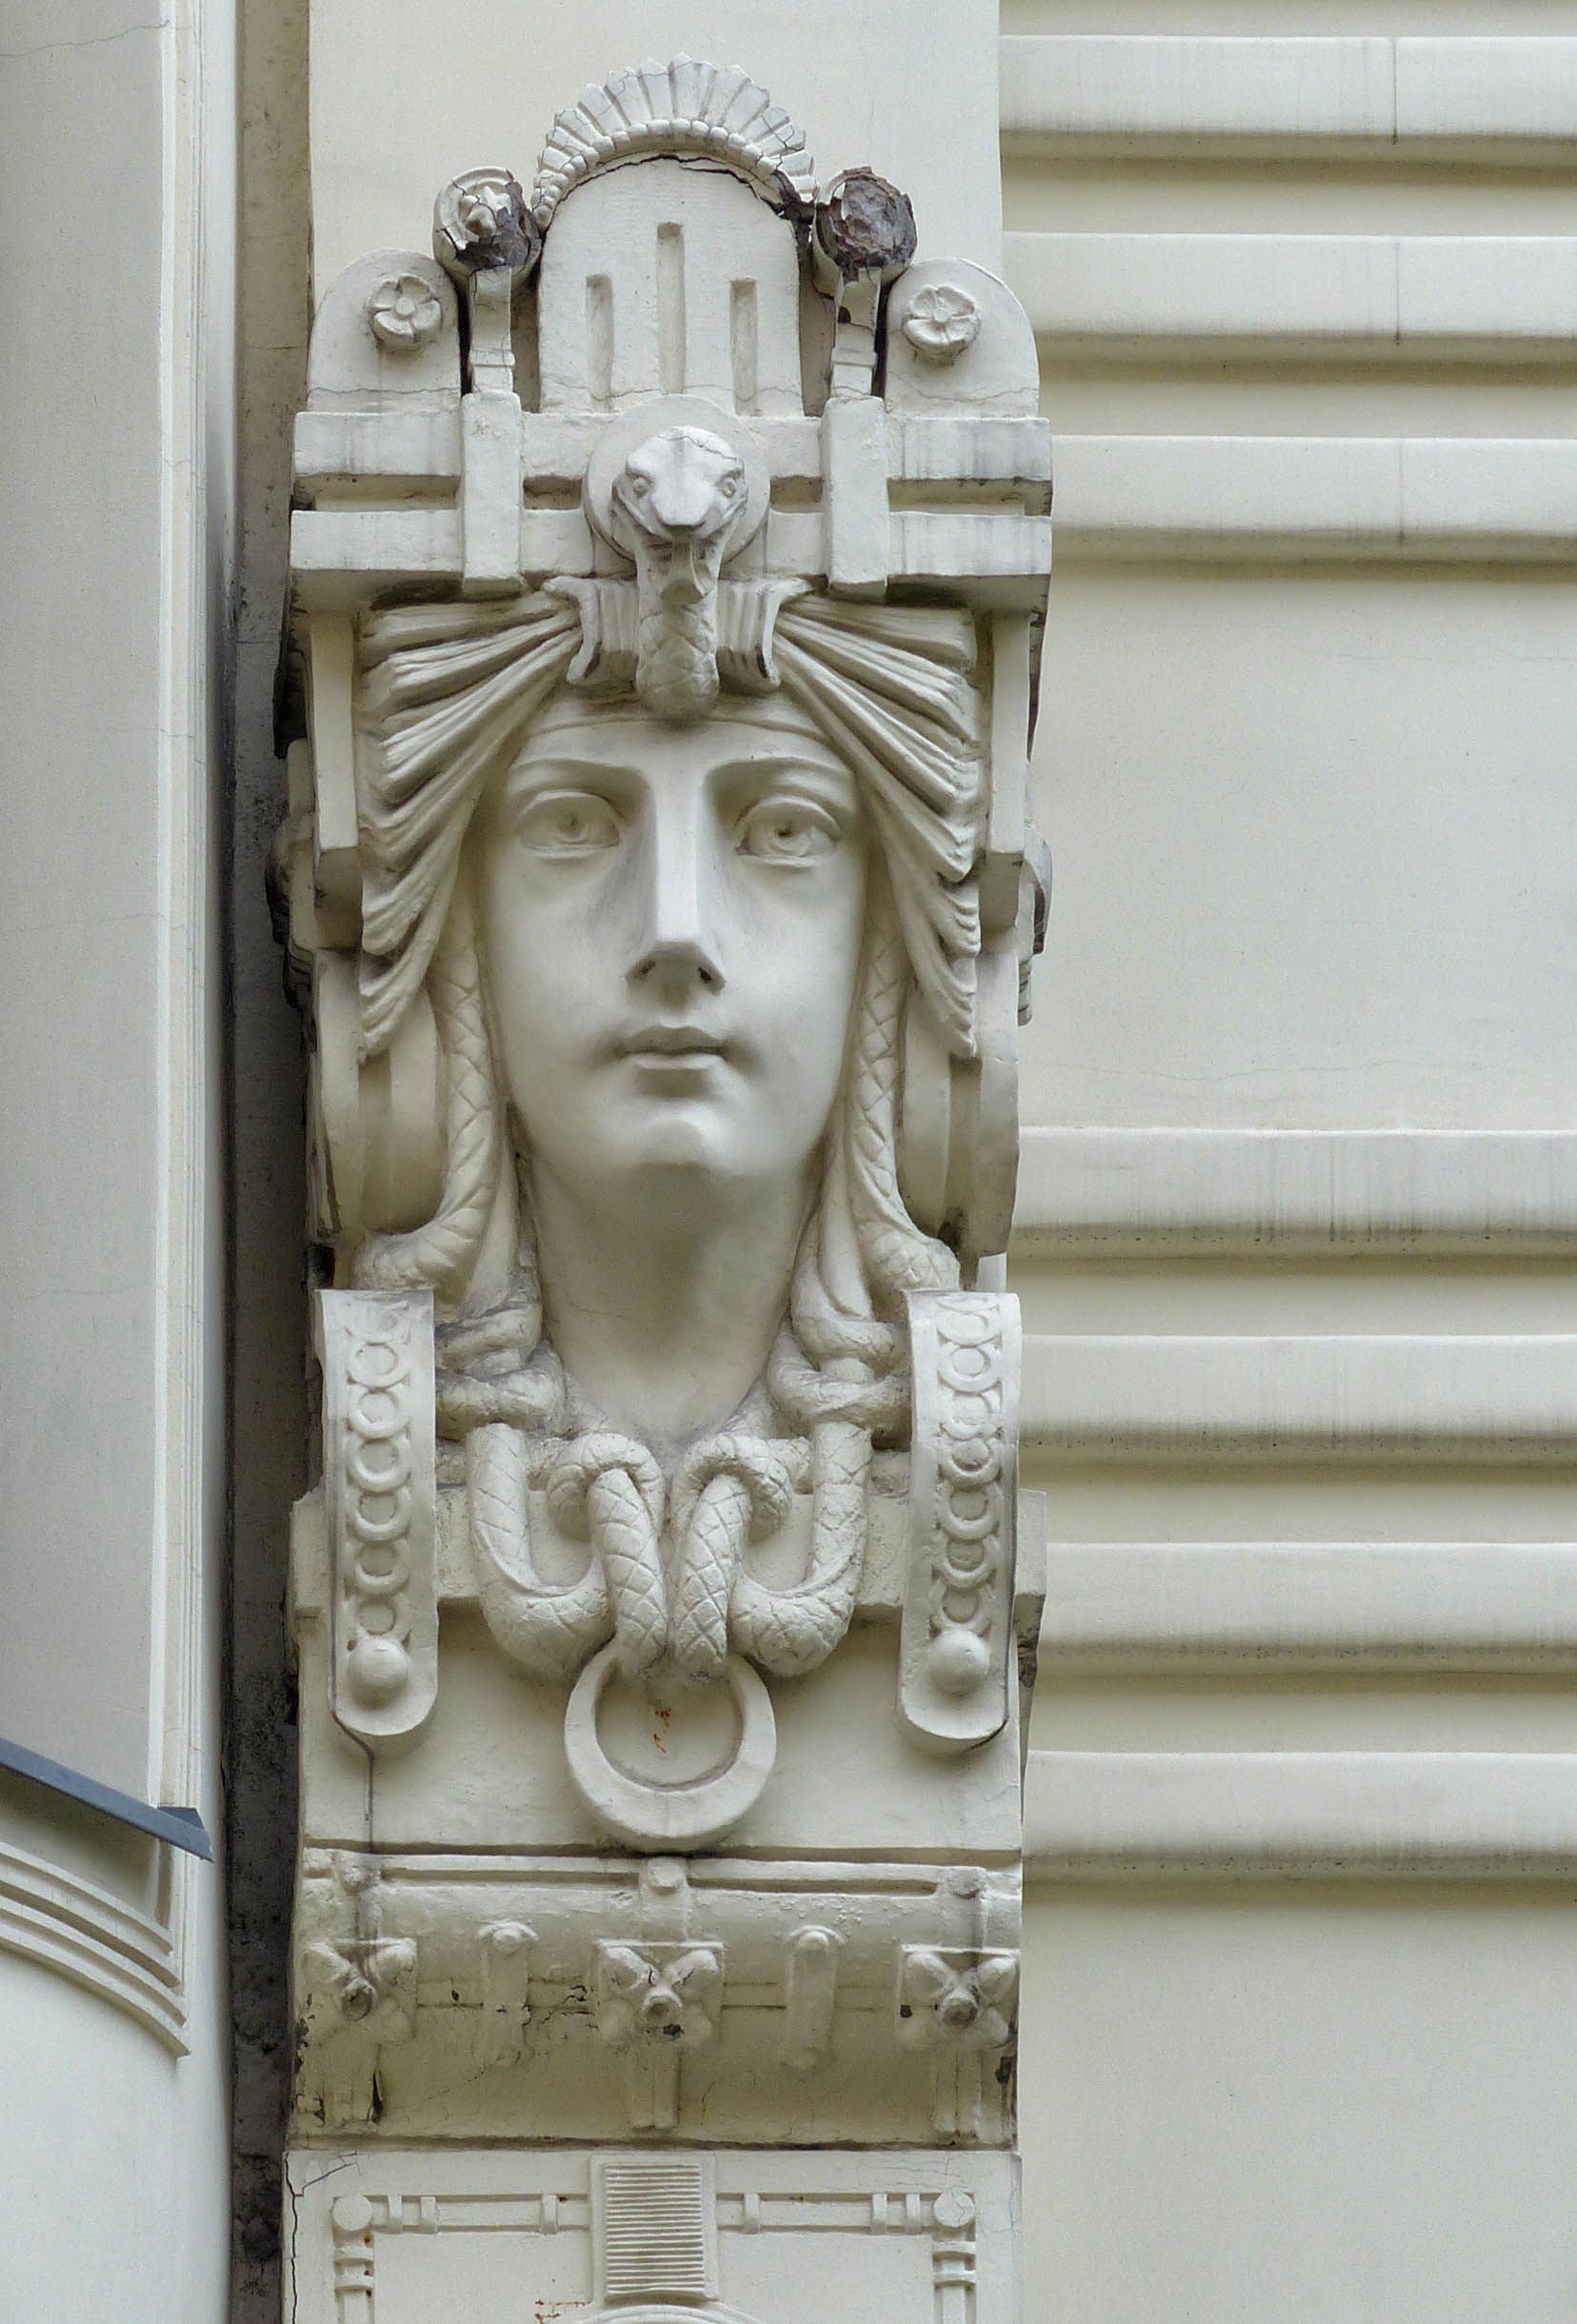 Stone face carved on a building